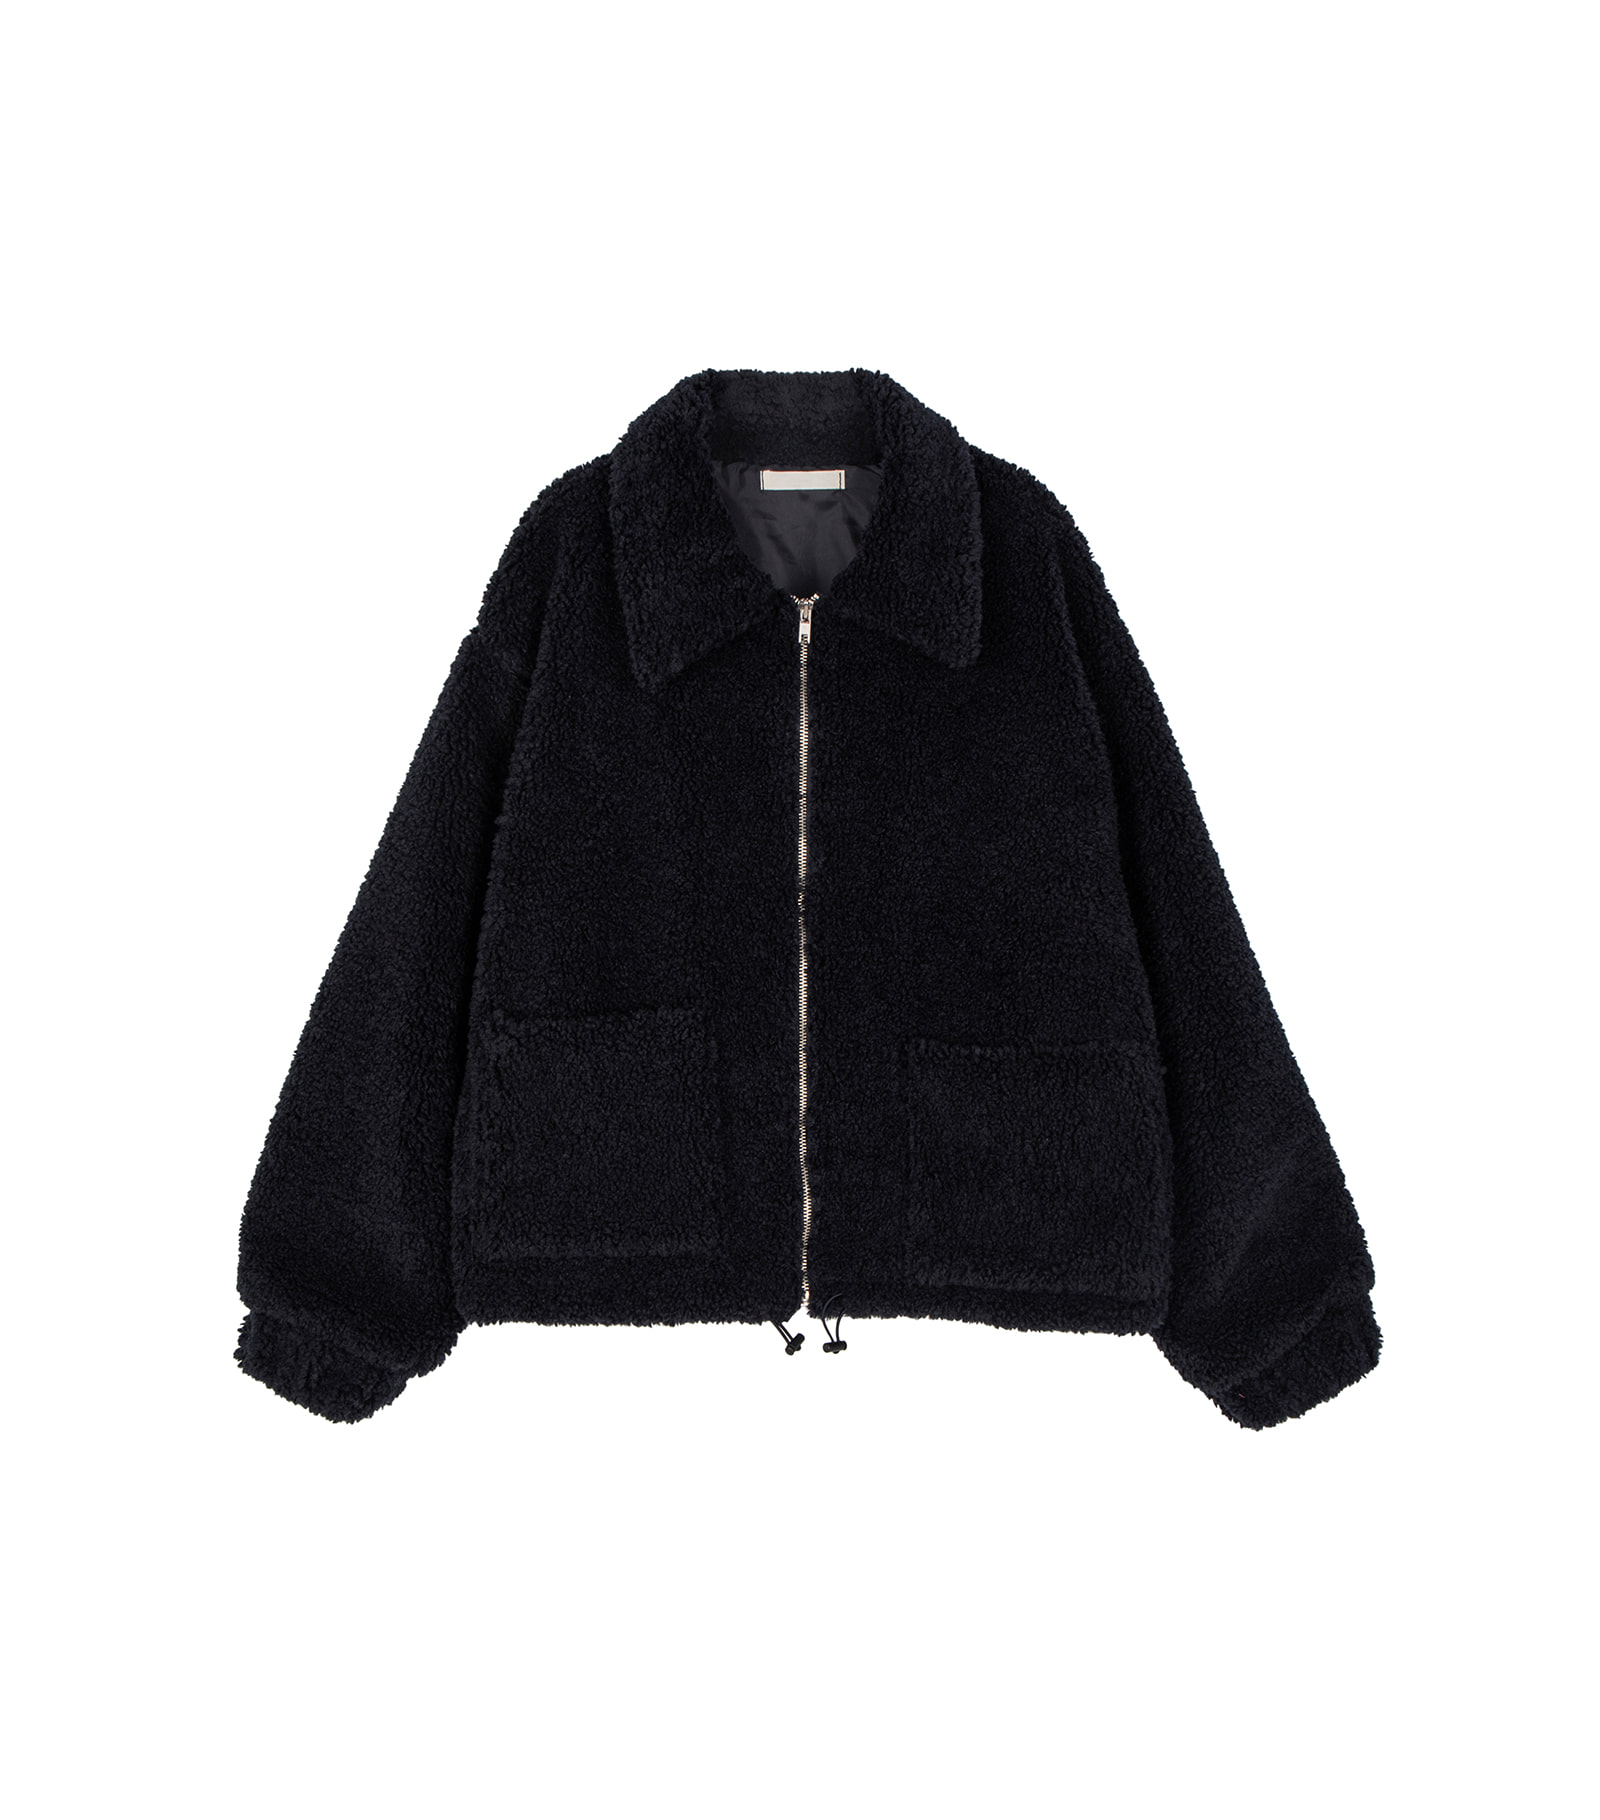 Bearing overfit shearling jacket